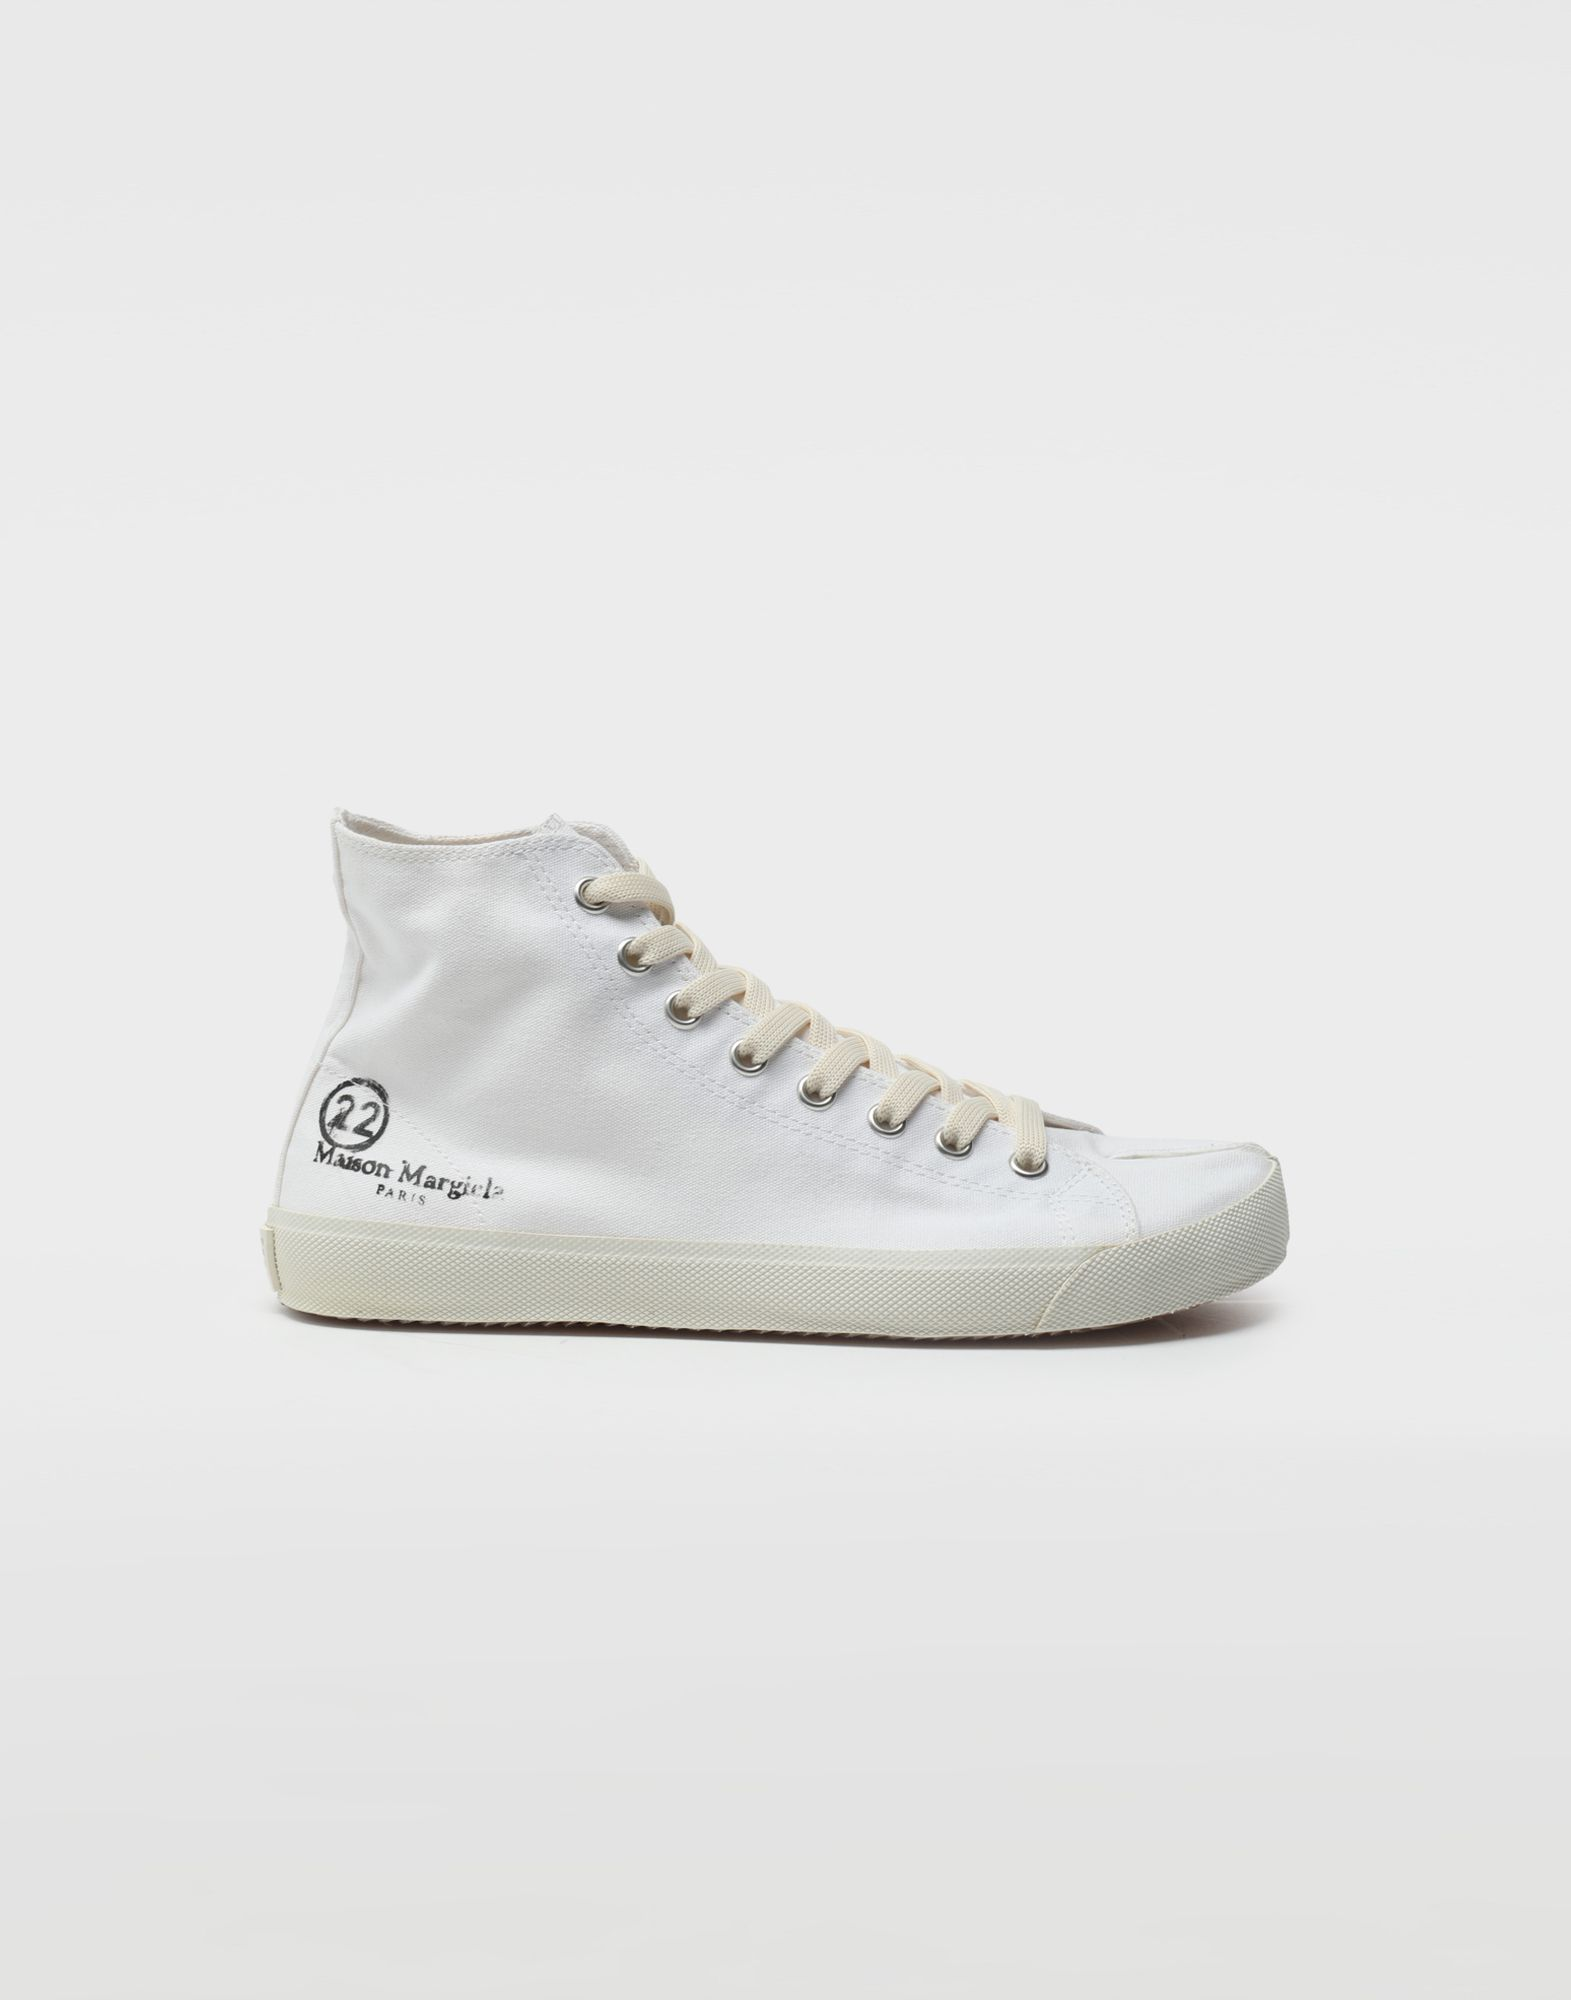 MAISON MARGIELA Tabi high top sneakers Sneakers Tabi Man f